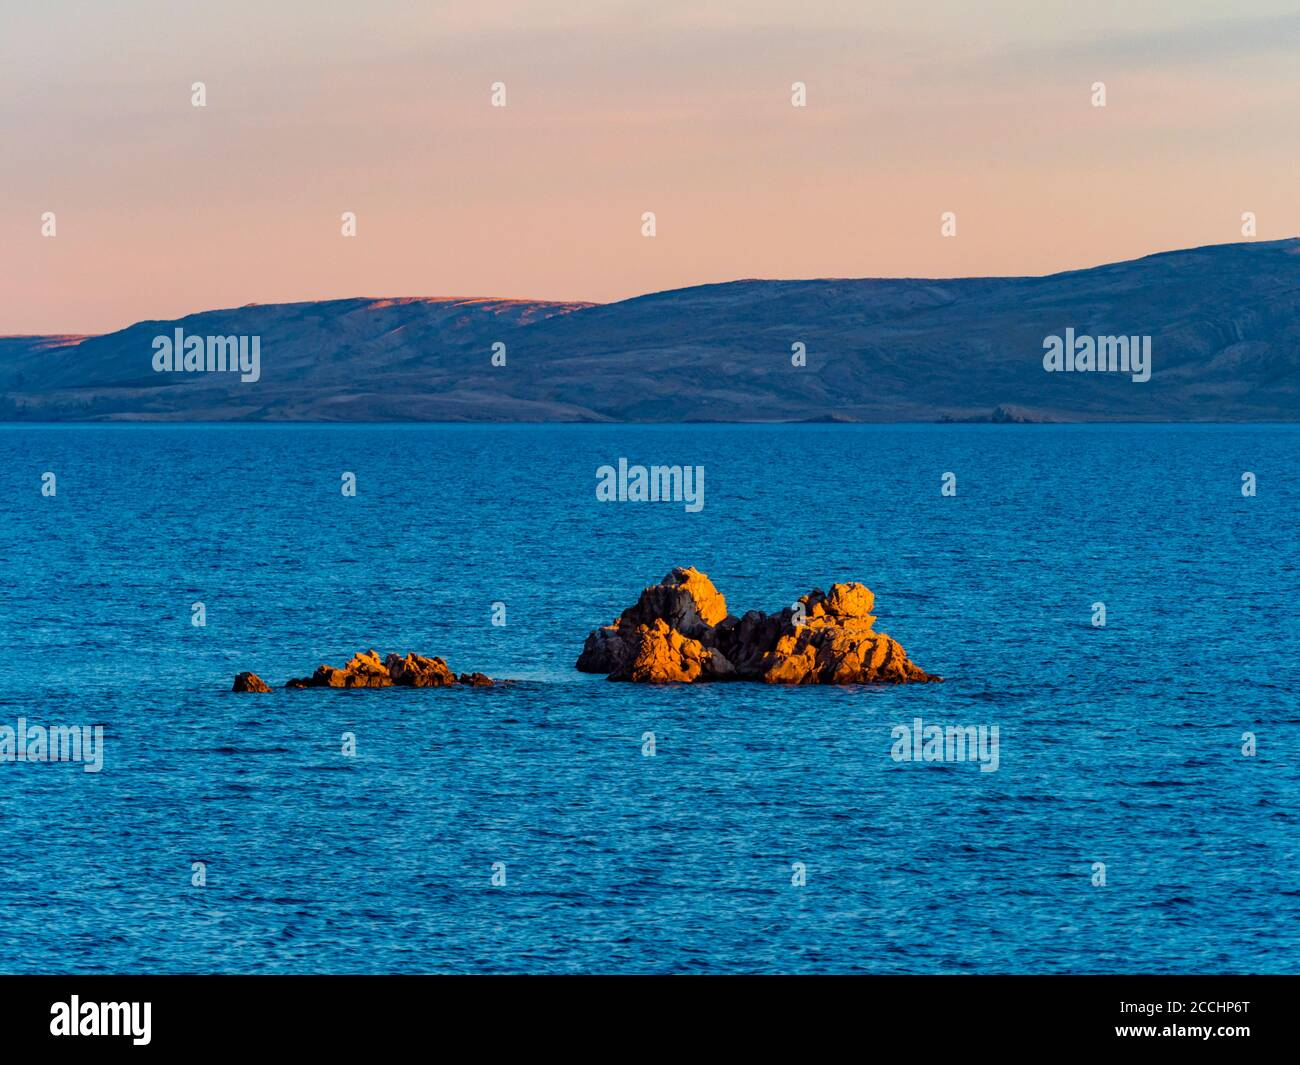 Evening scenery lonely small tiny rocky island before Ribarica near Karlobag in Croatia Europe Stock Photo